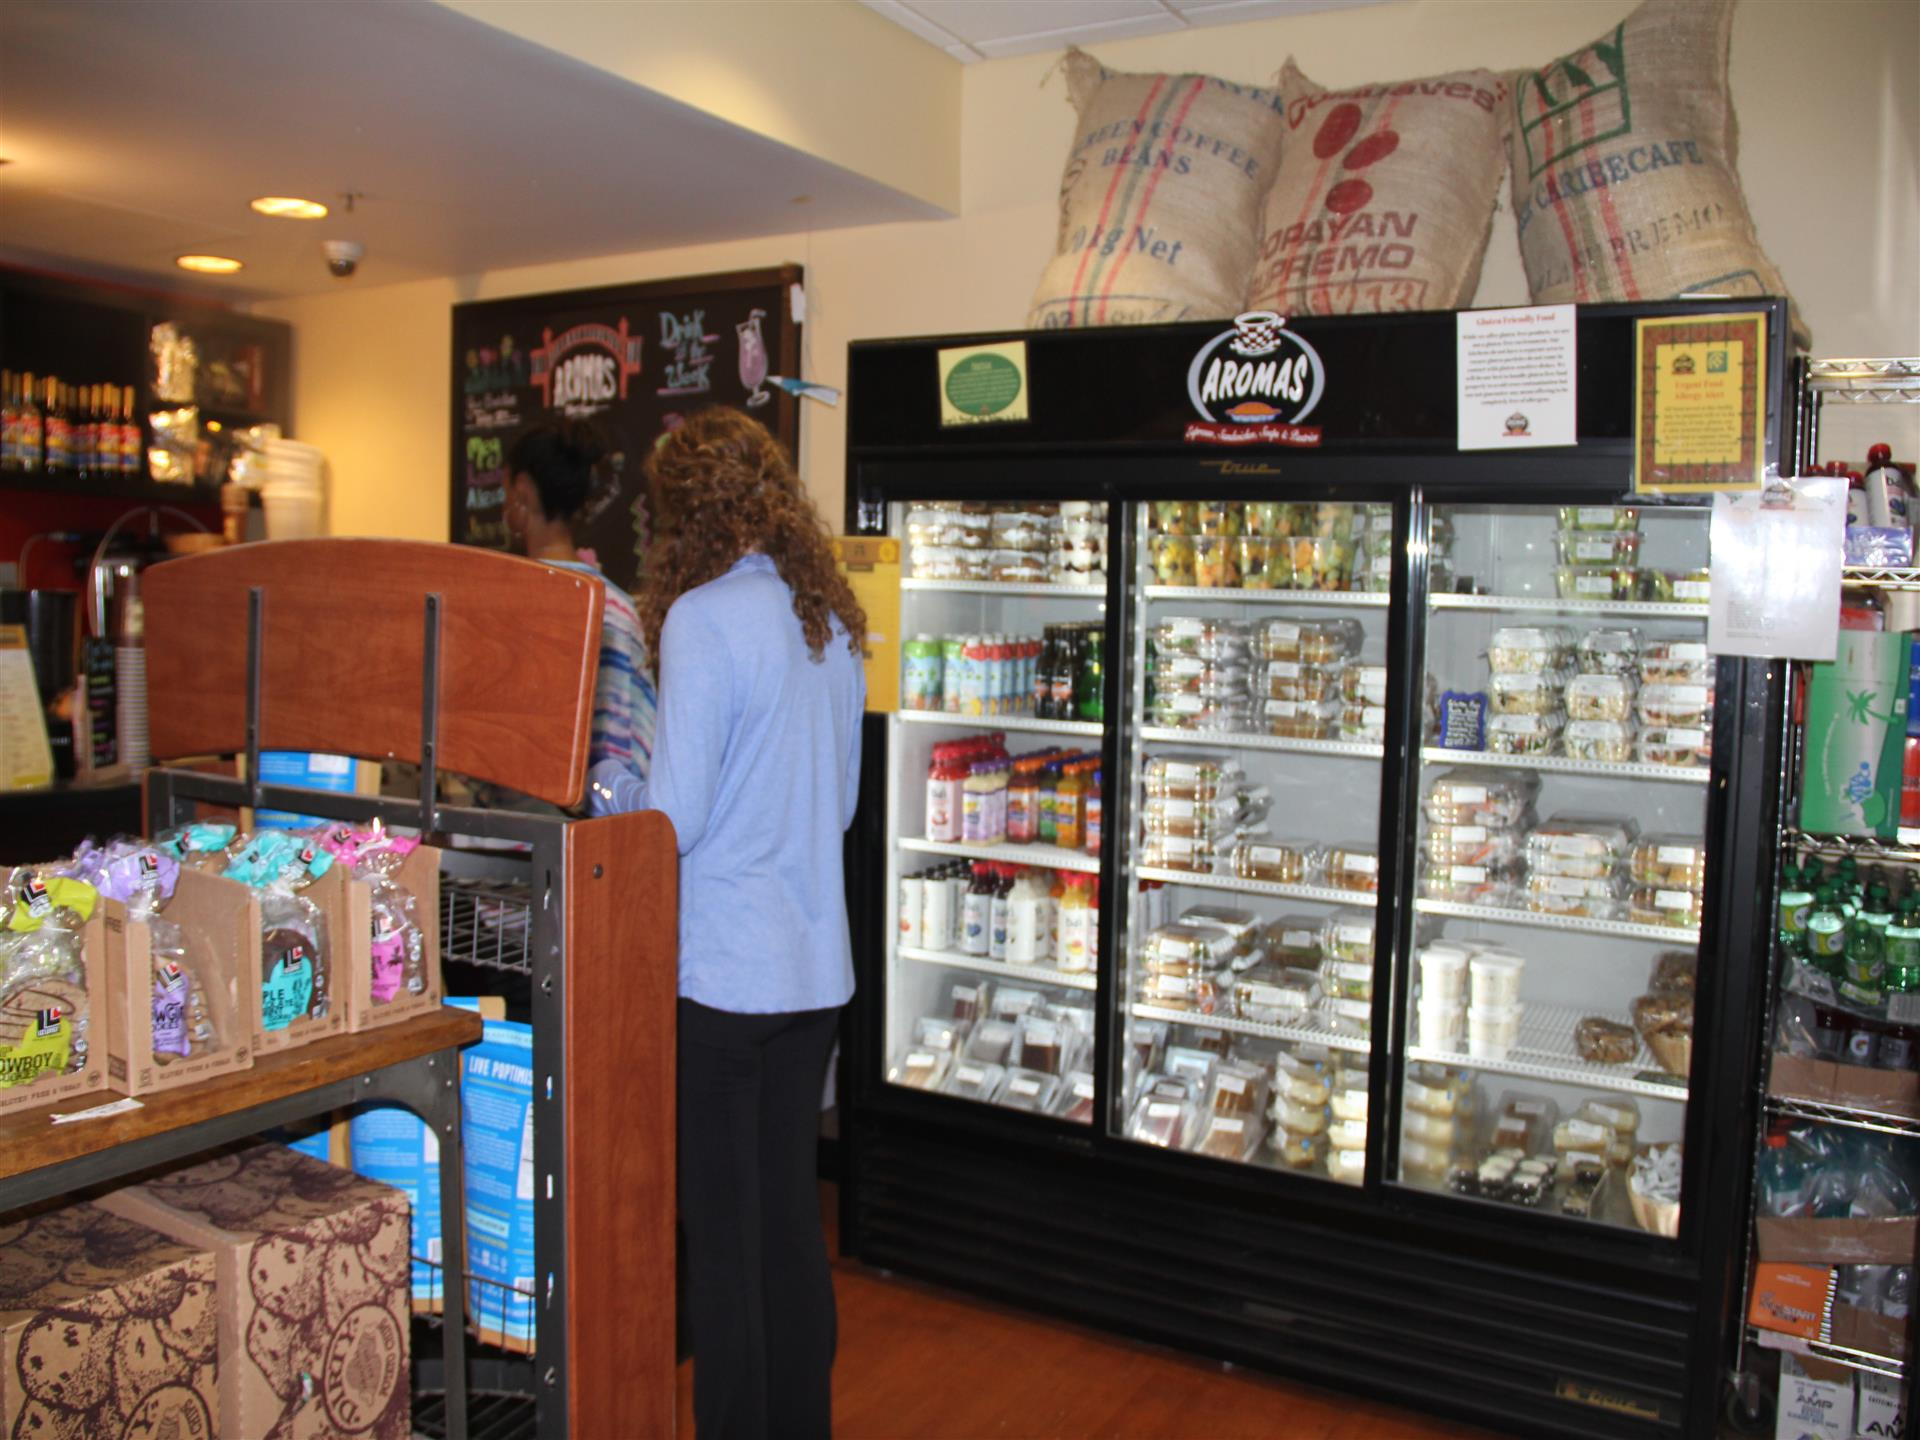 customers standing in line to place their order with various refrigerated items in background